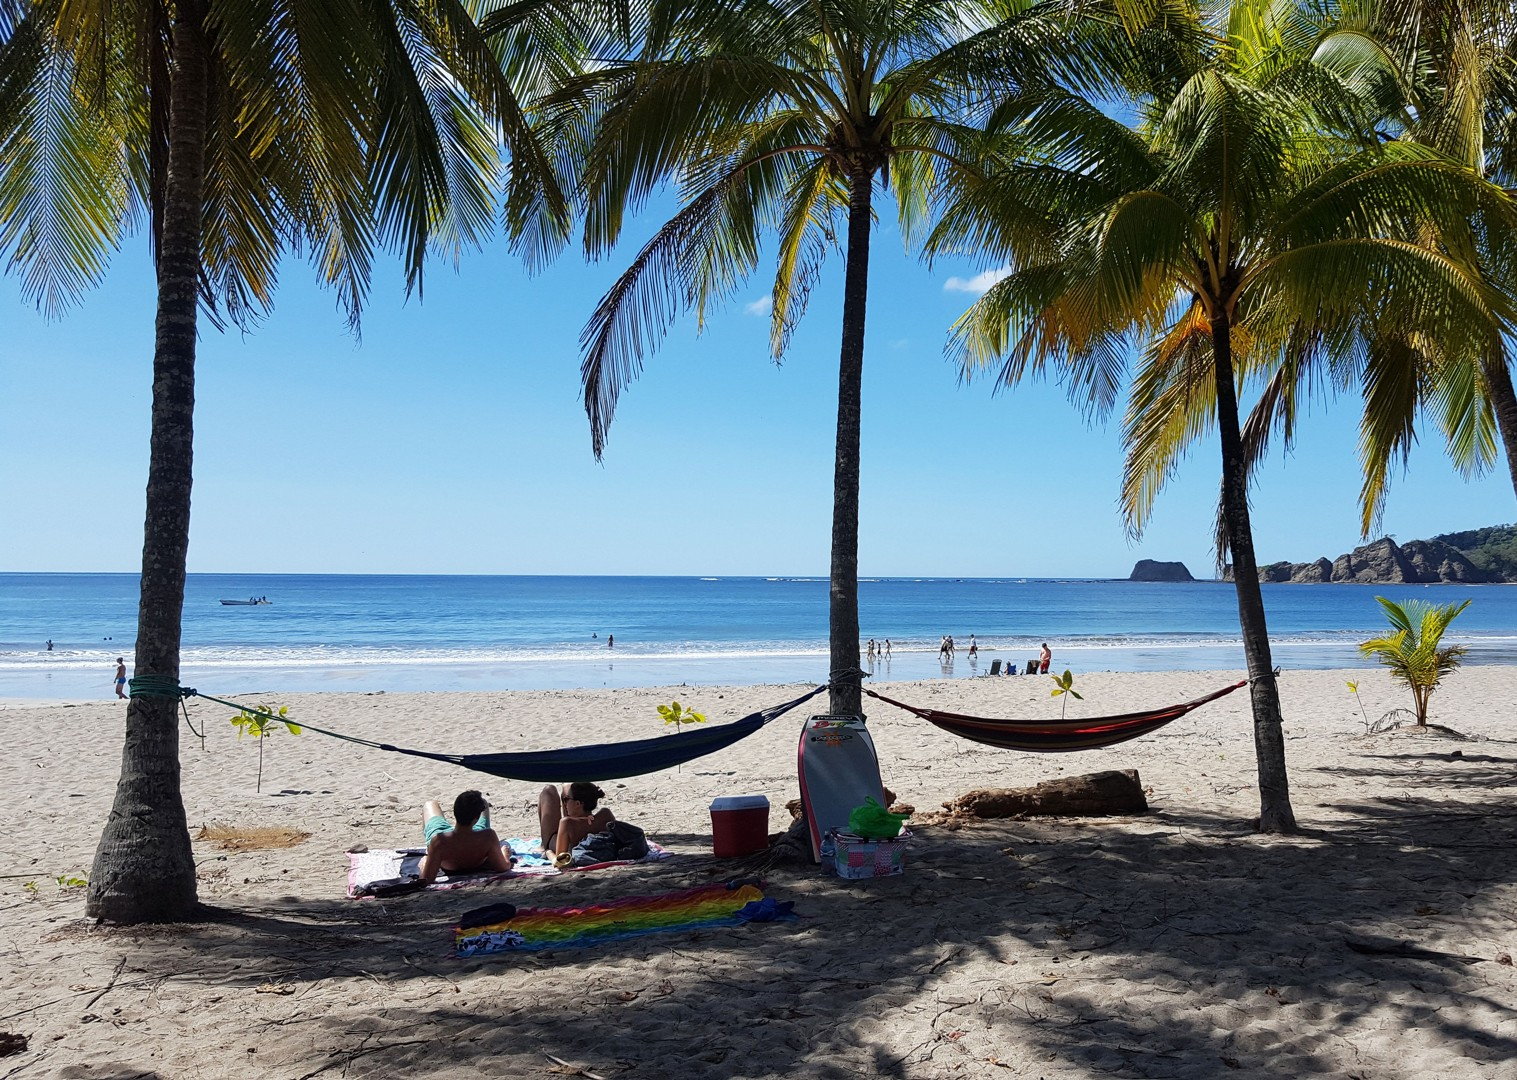 beach-costa-rica-family-guided-cycling-holiday.jpg - Costa Rica - Volcanoes and Valleys - Family Cycling